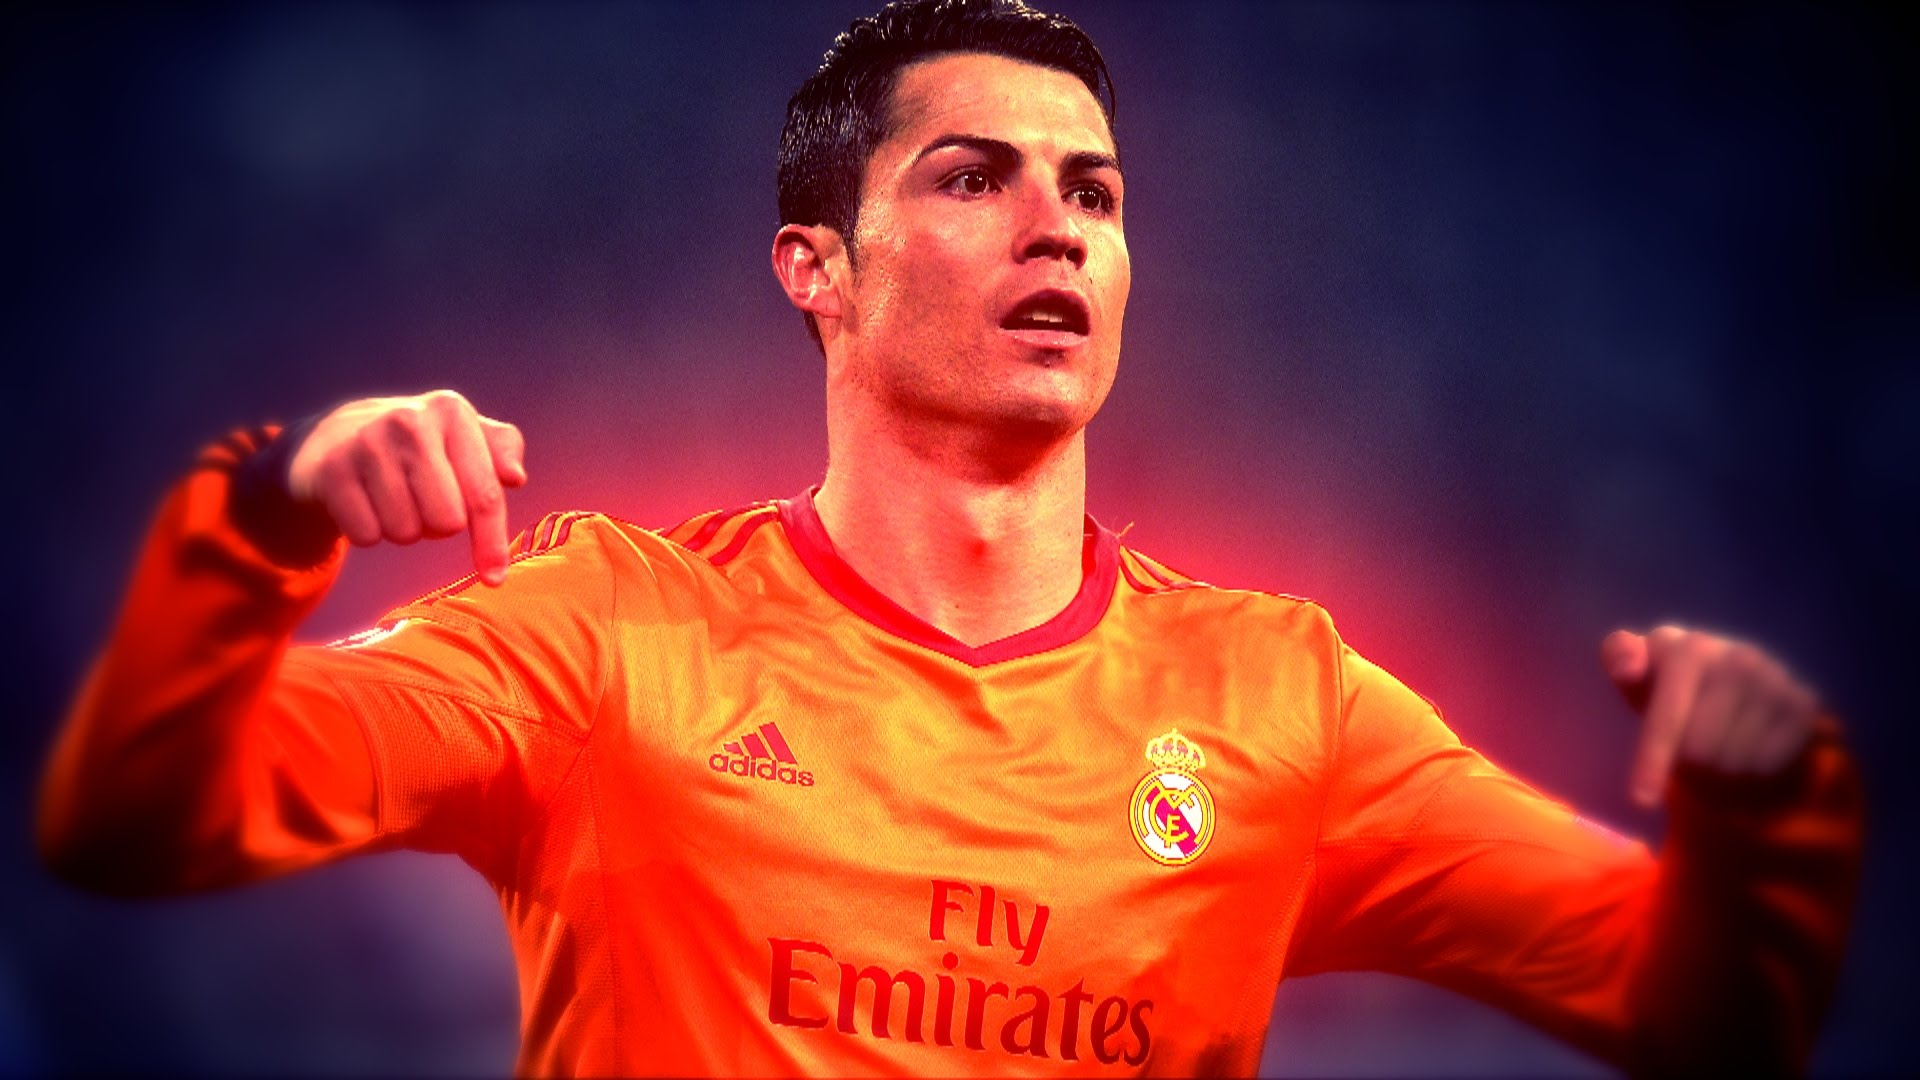 Wallpapers Hd Real Madrid Cristiano Ronaldo Hd Wallpapers Free Download